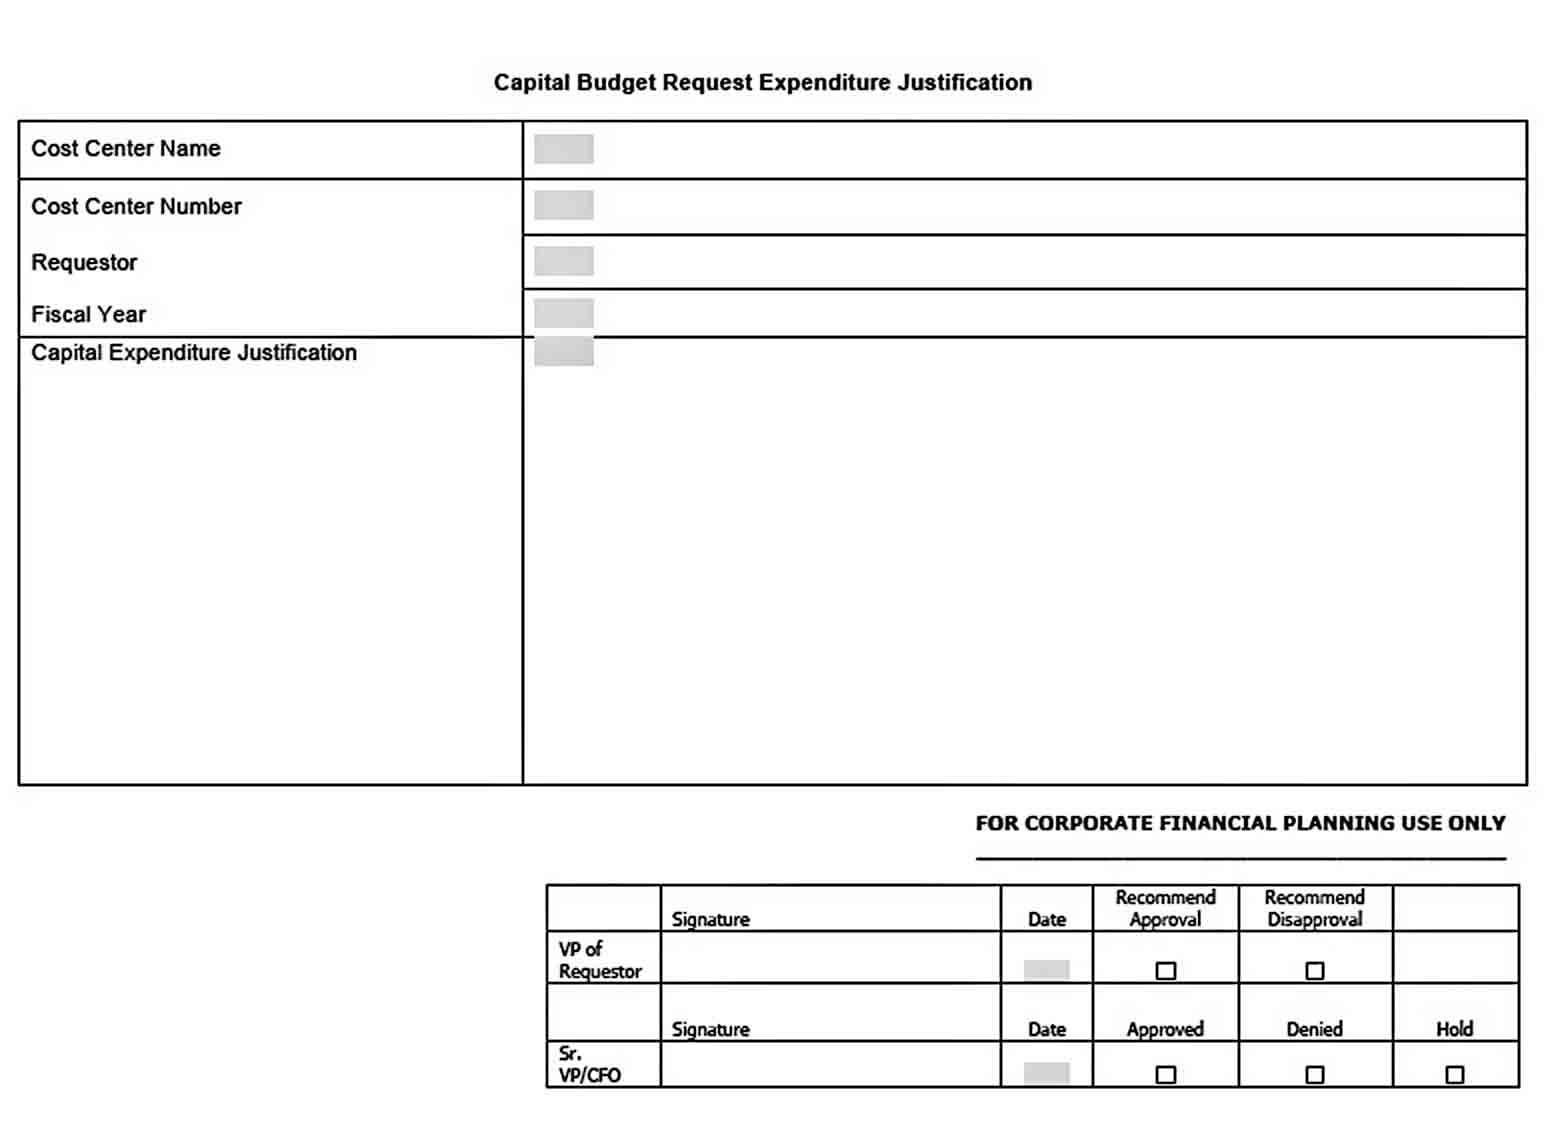 Capital Budget Request Expenditure Template Free Download sample